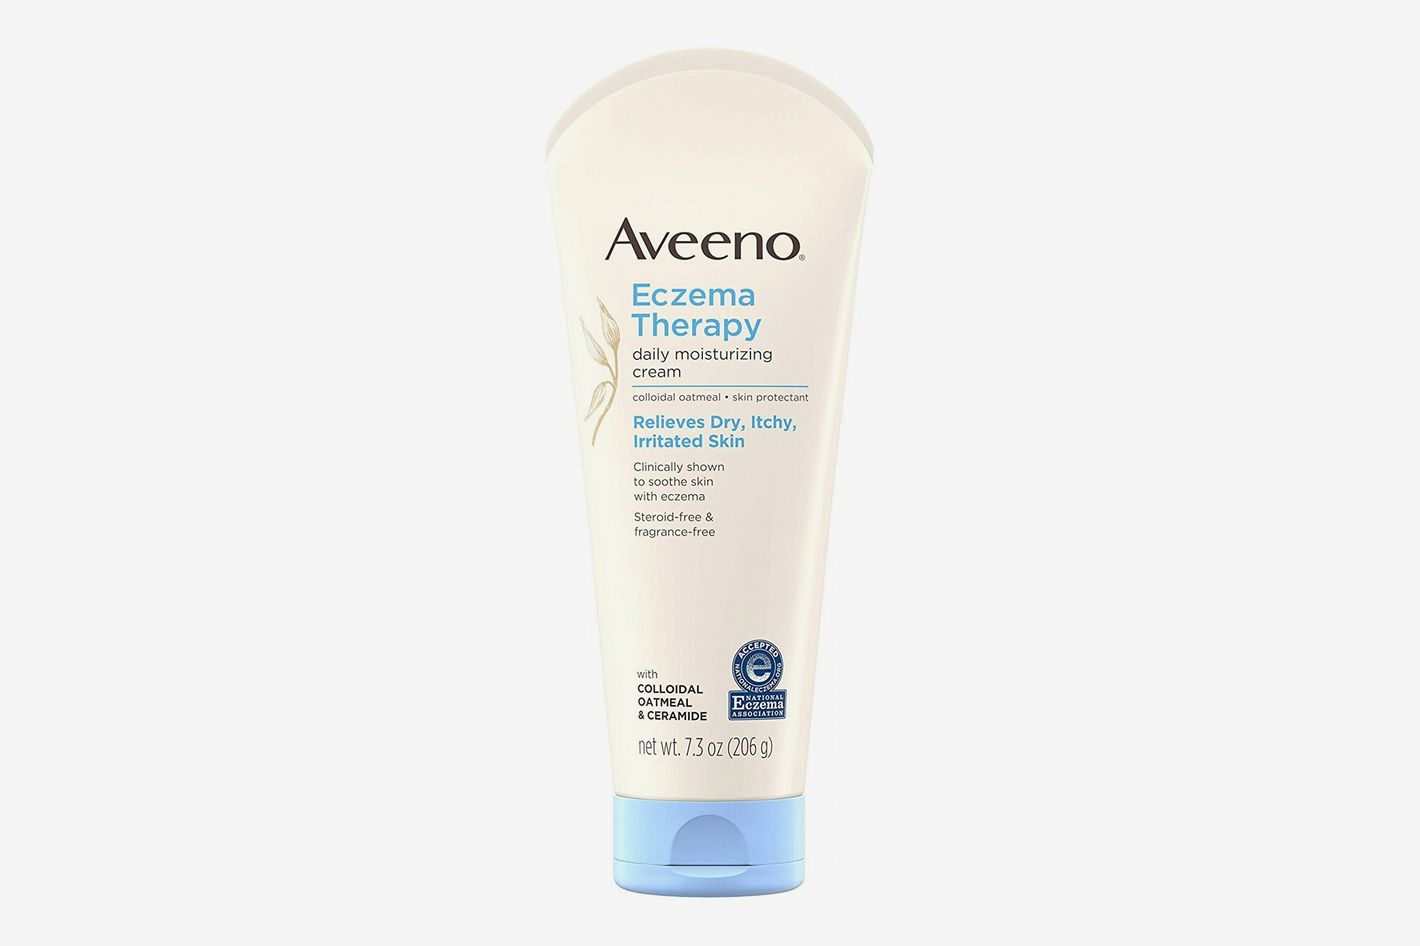 Aveeno Eczema Therapy Daily Moisturizing Cream for Sensitive Skin, Soothing Lotion With Colloidal Oatmeal